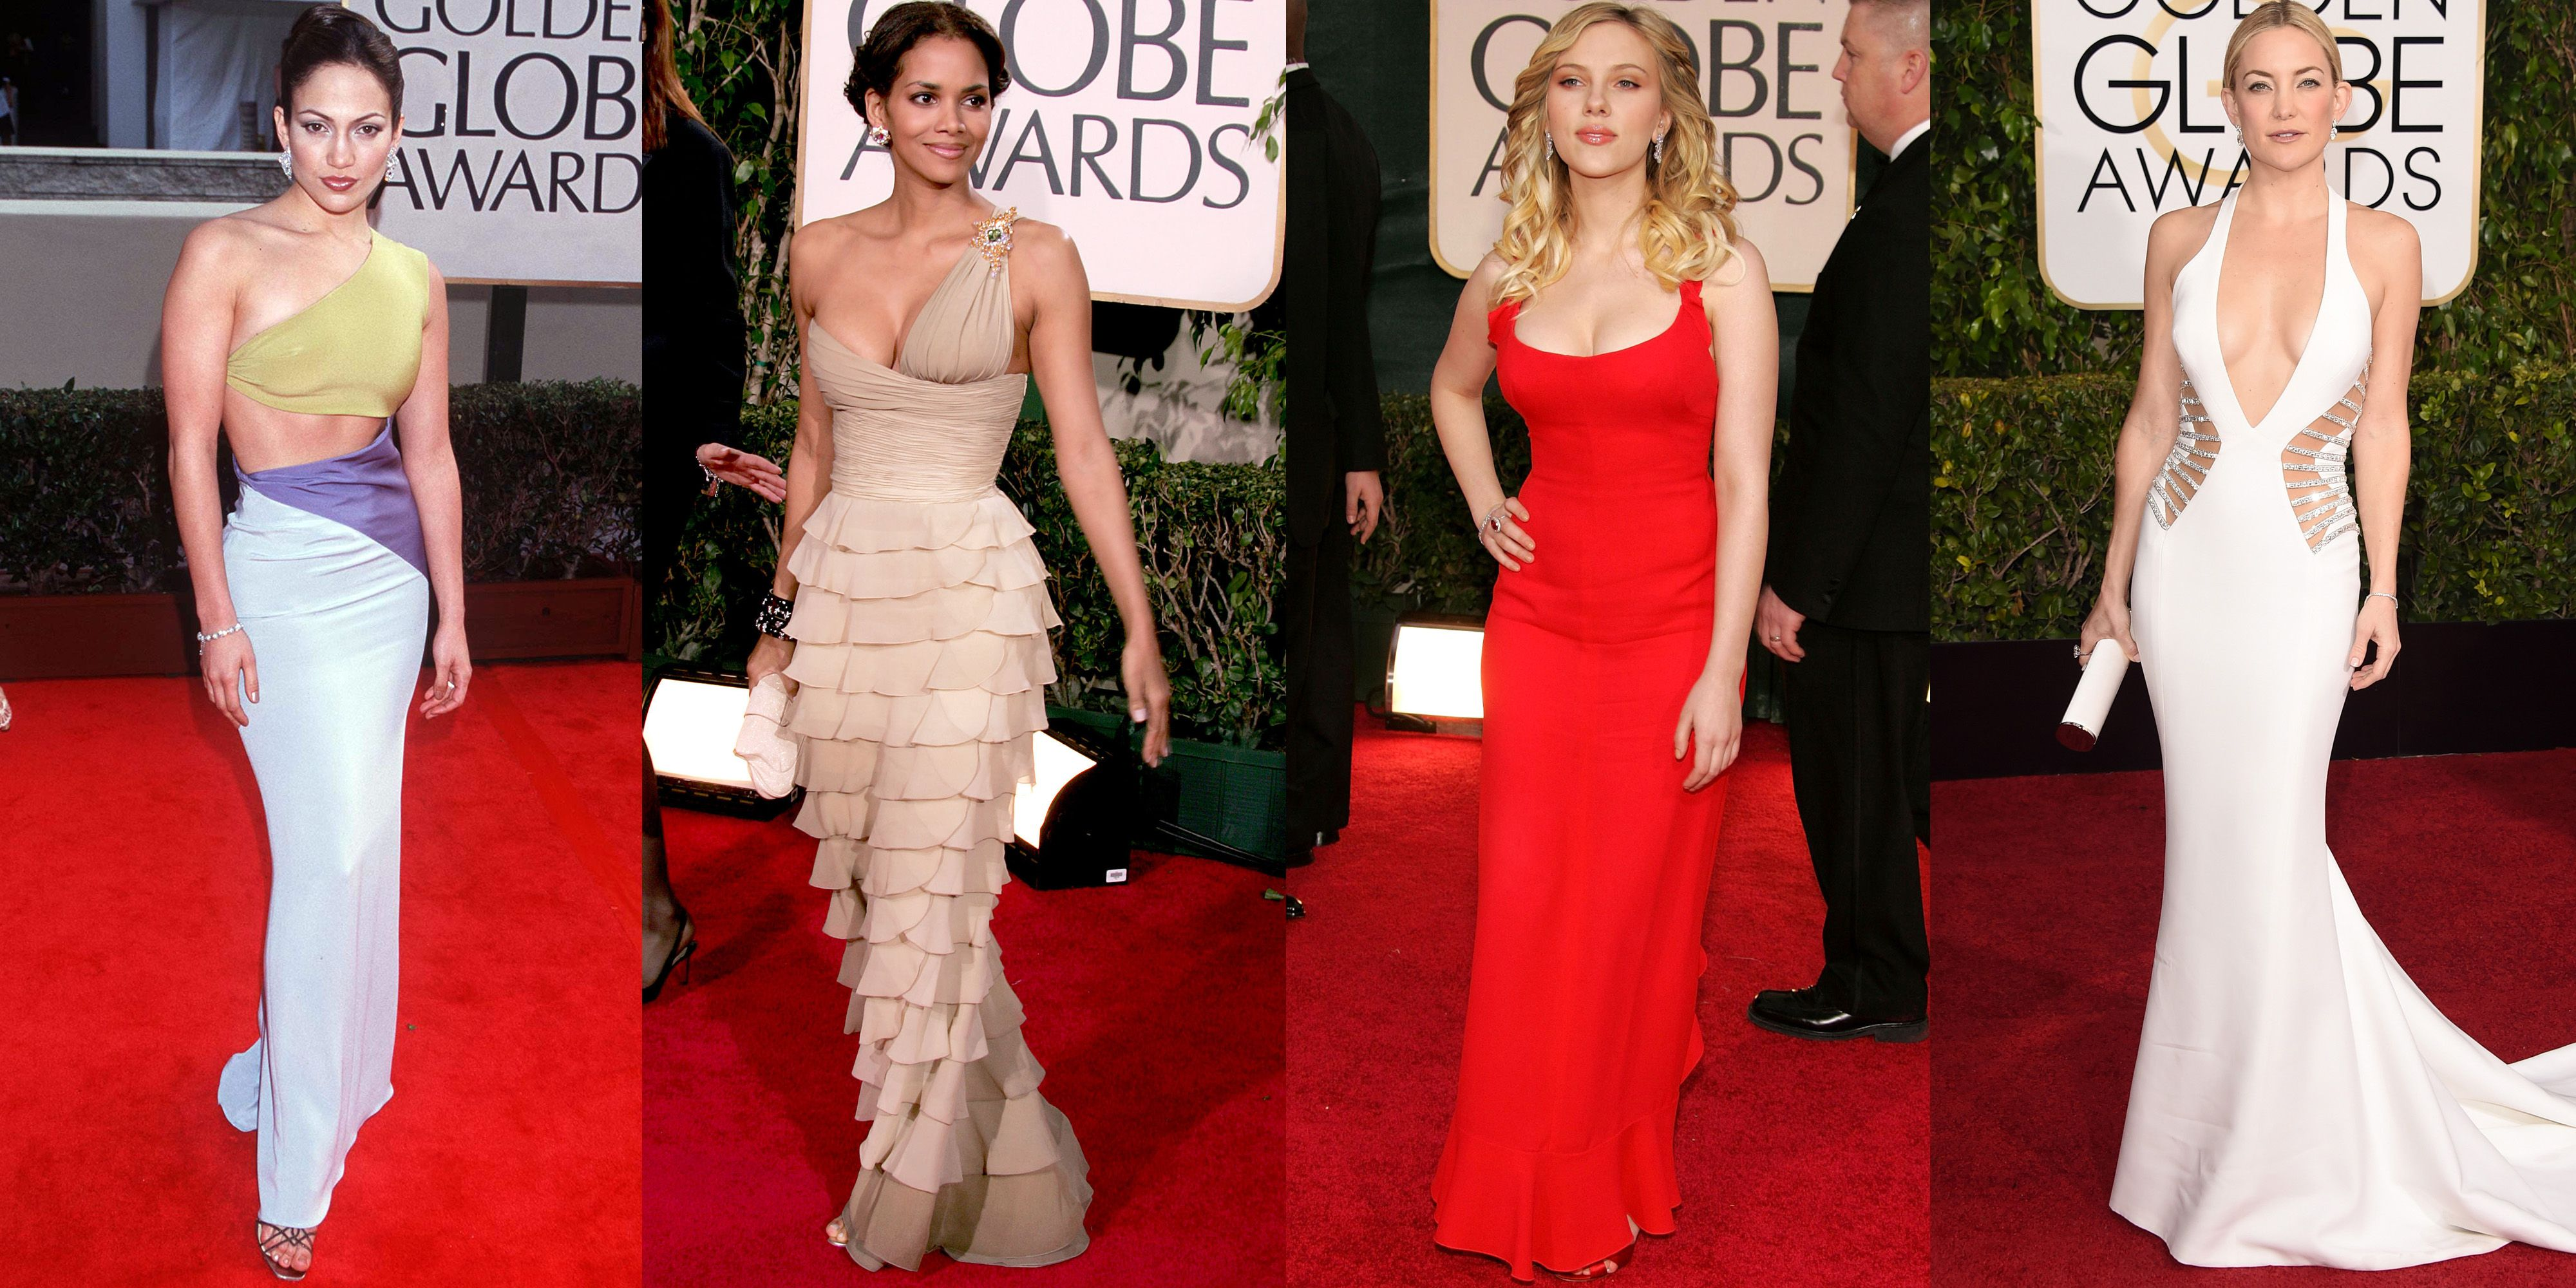 3f91e83bc3f Sexiest Golden Globes Dresses of All Time - Most Scandalous Golden ...